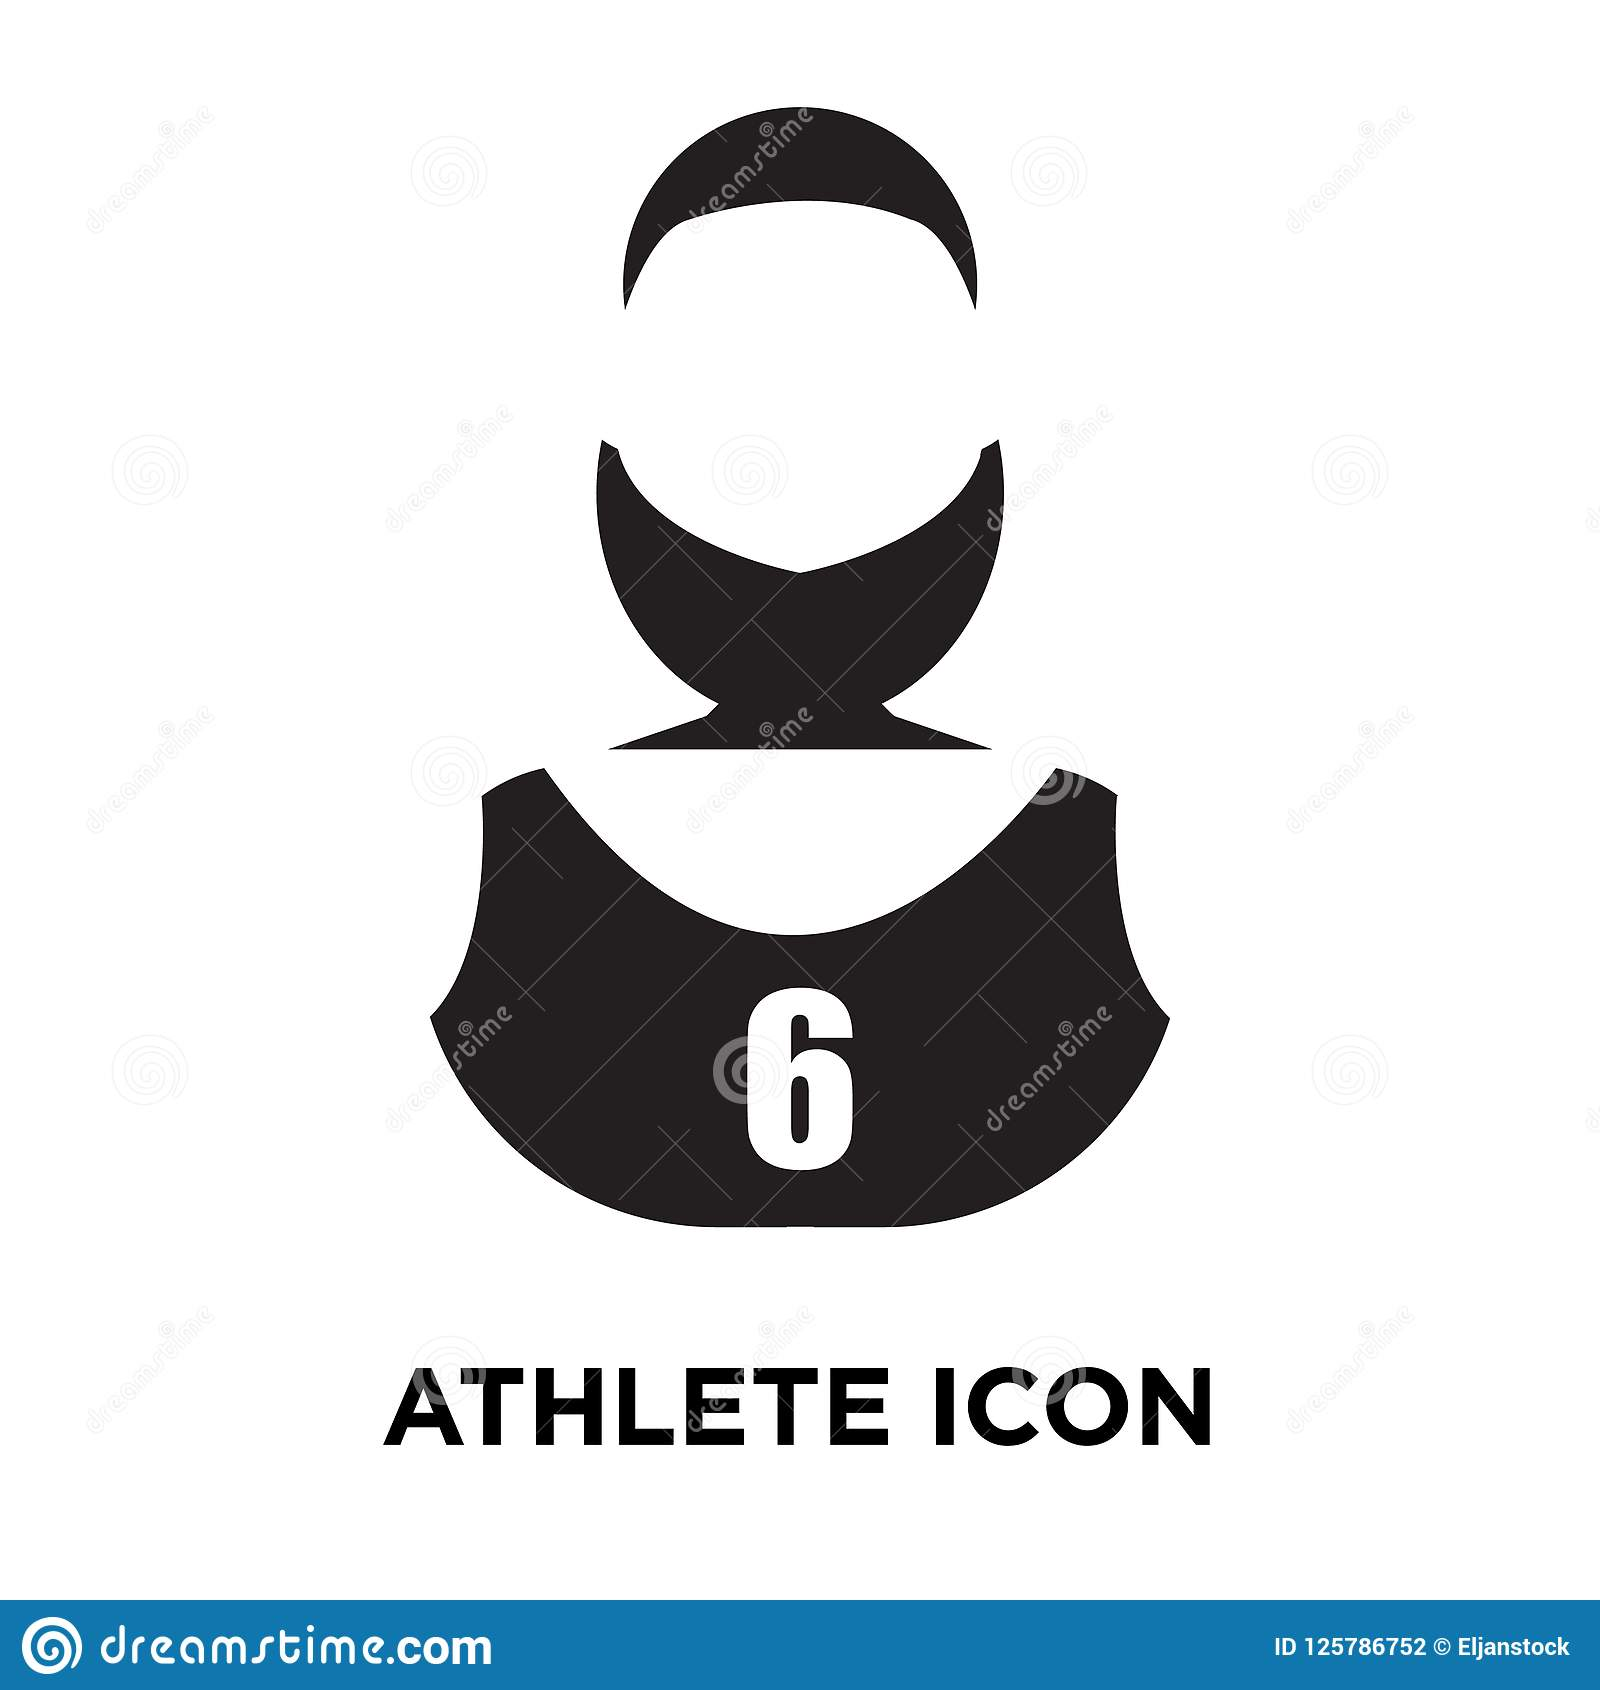 Athlete icon vector isolated on white background, logo concept o